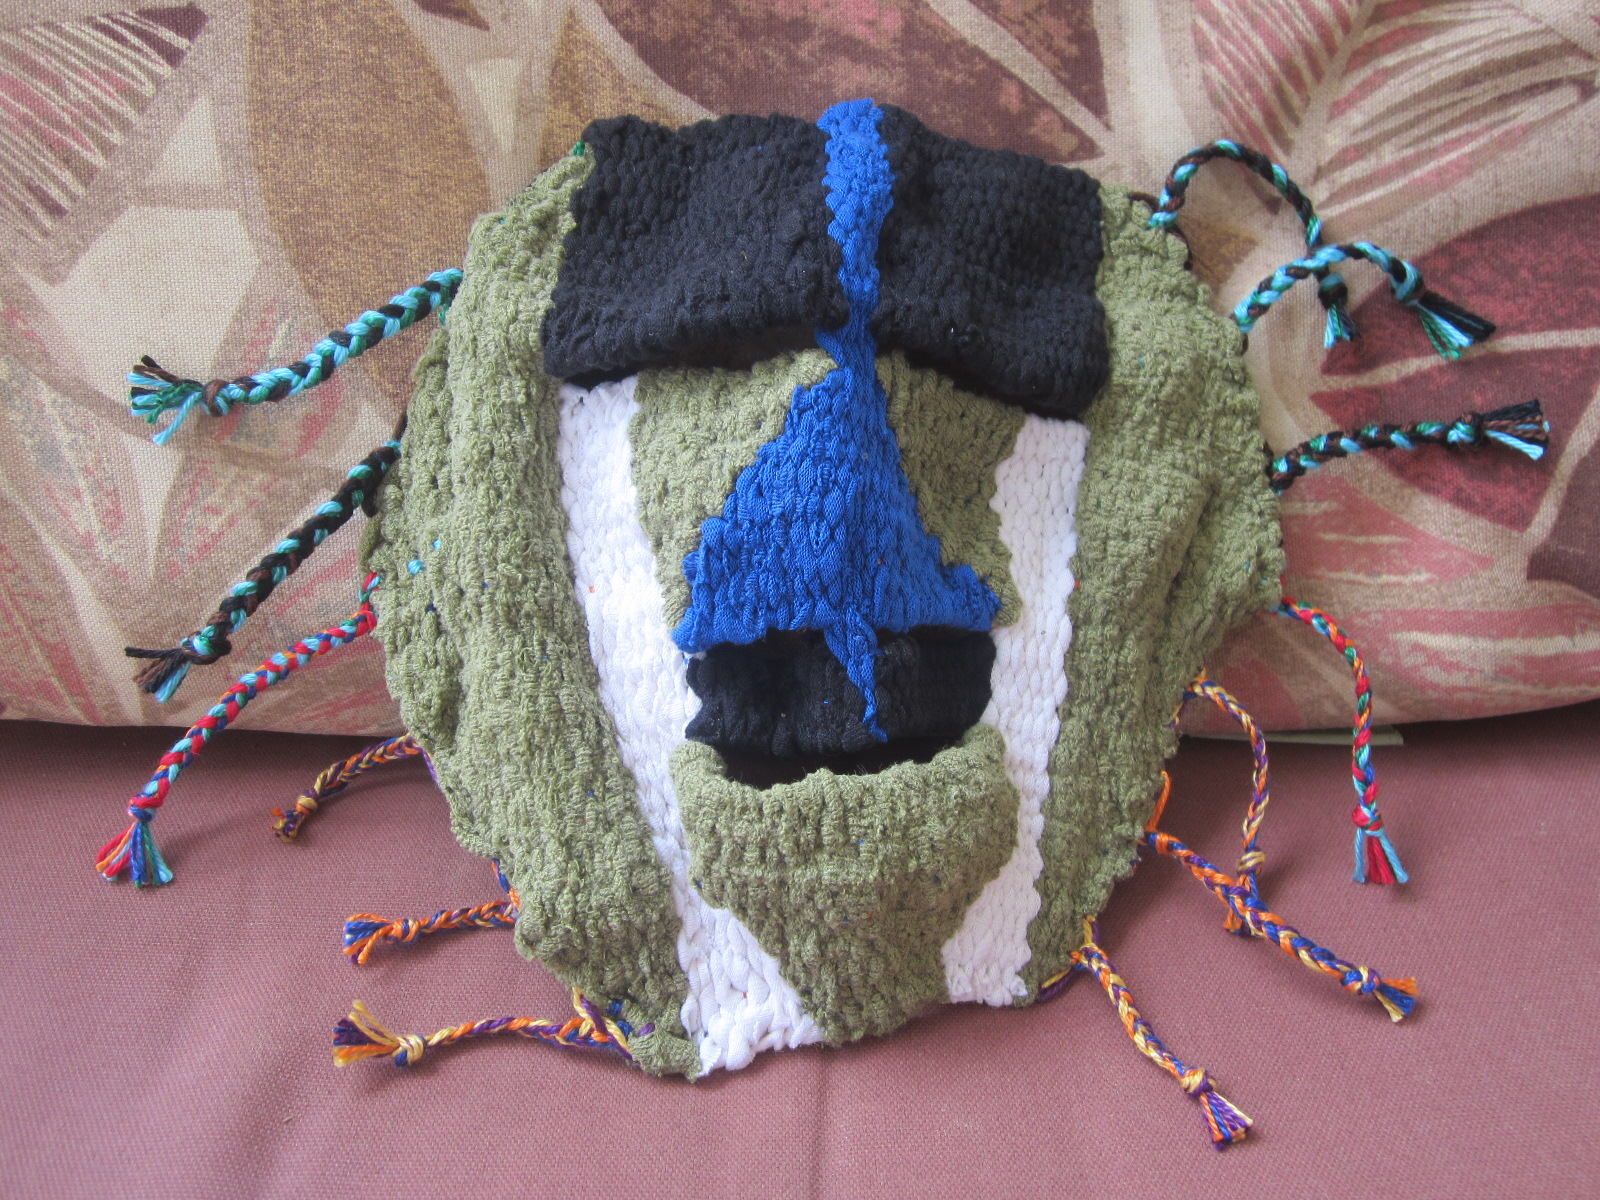 Completed woven mask from recycled t-shirts